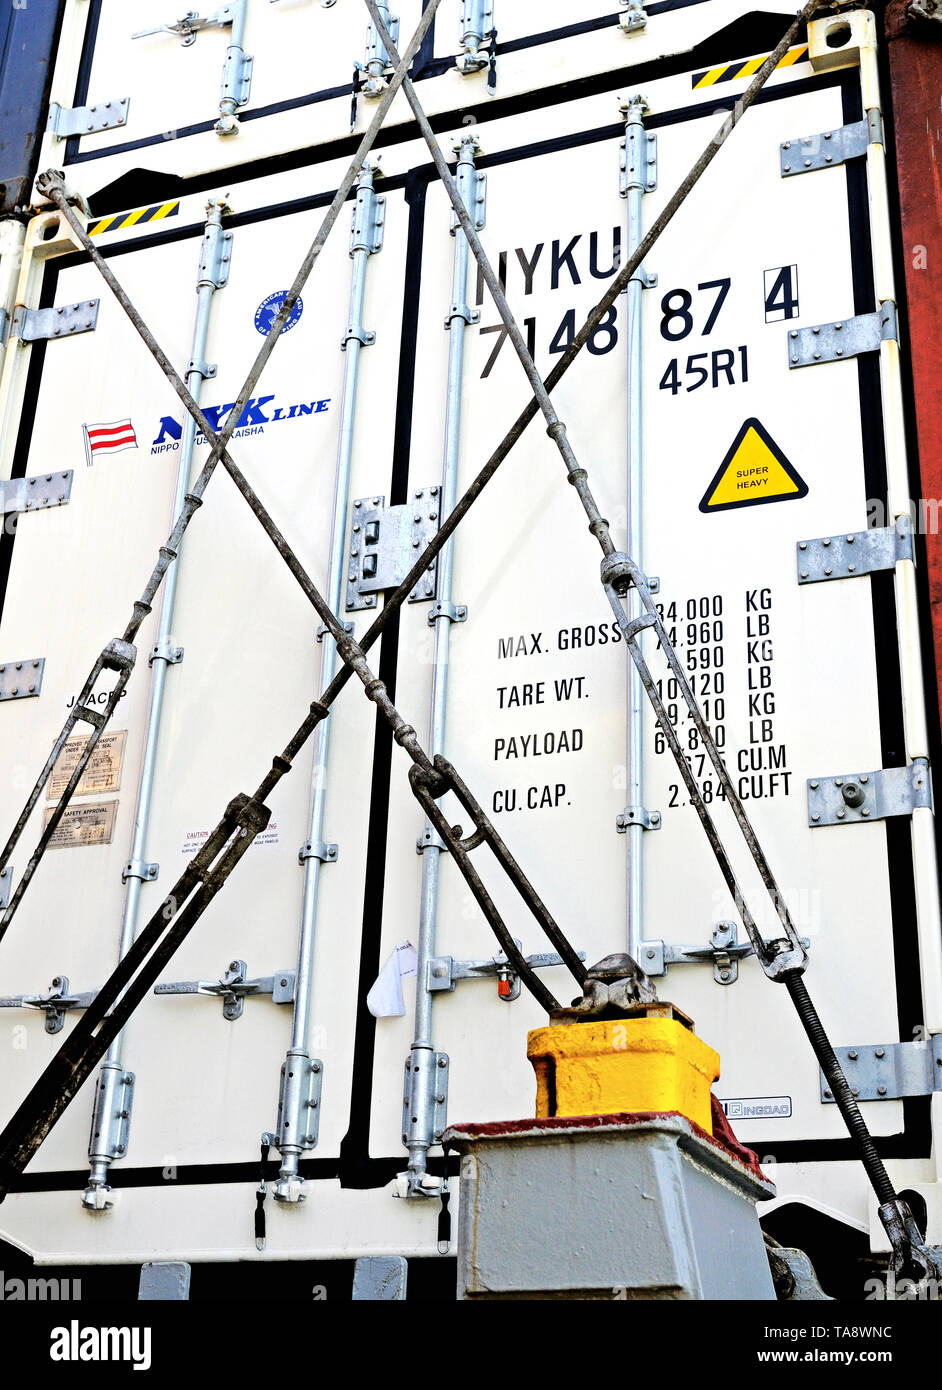 south china sea - 2008.08.31: refrigerated containers stowed on deck of containership asta rickmers (imo 9212046) - Stock Image